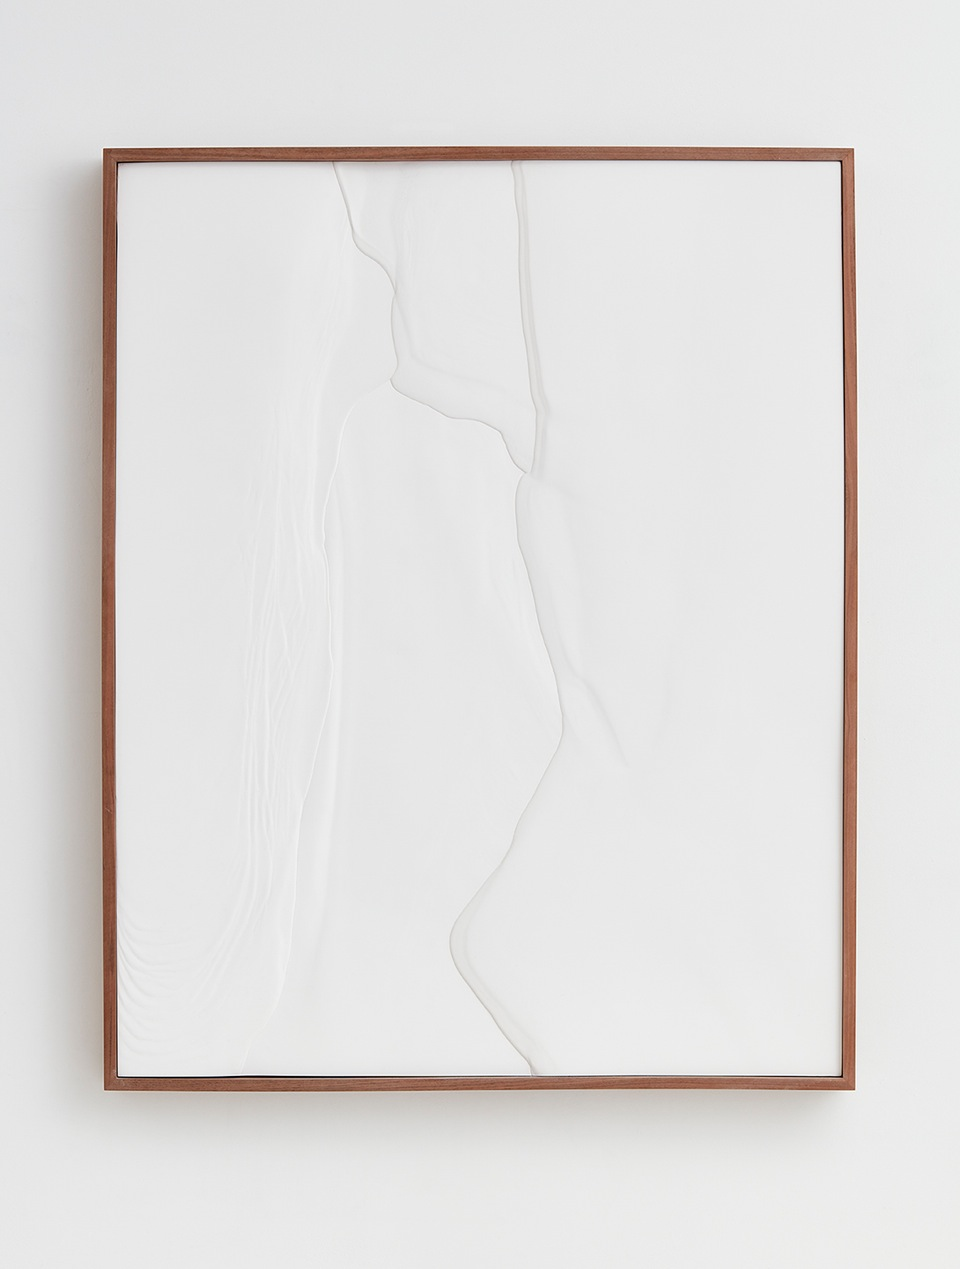 Anthony Pearson  Untitled (Plaster Positive)  2016 Hydrocal in walnut frame 61h x 48.75w x 4d in AP413